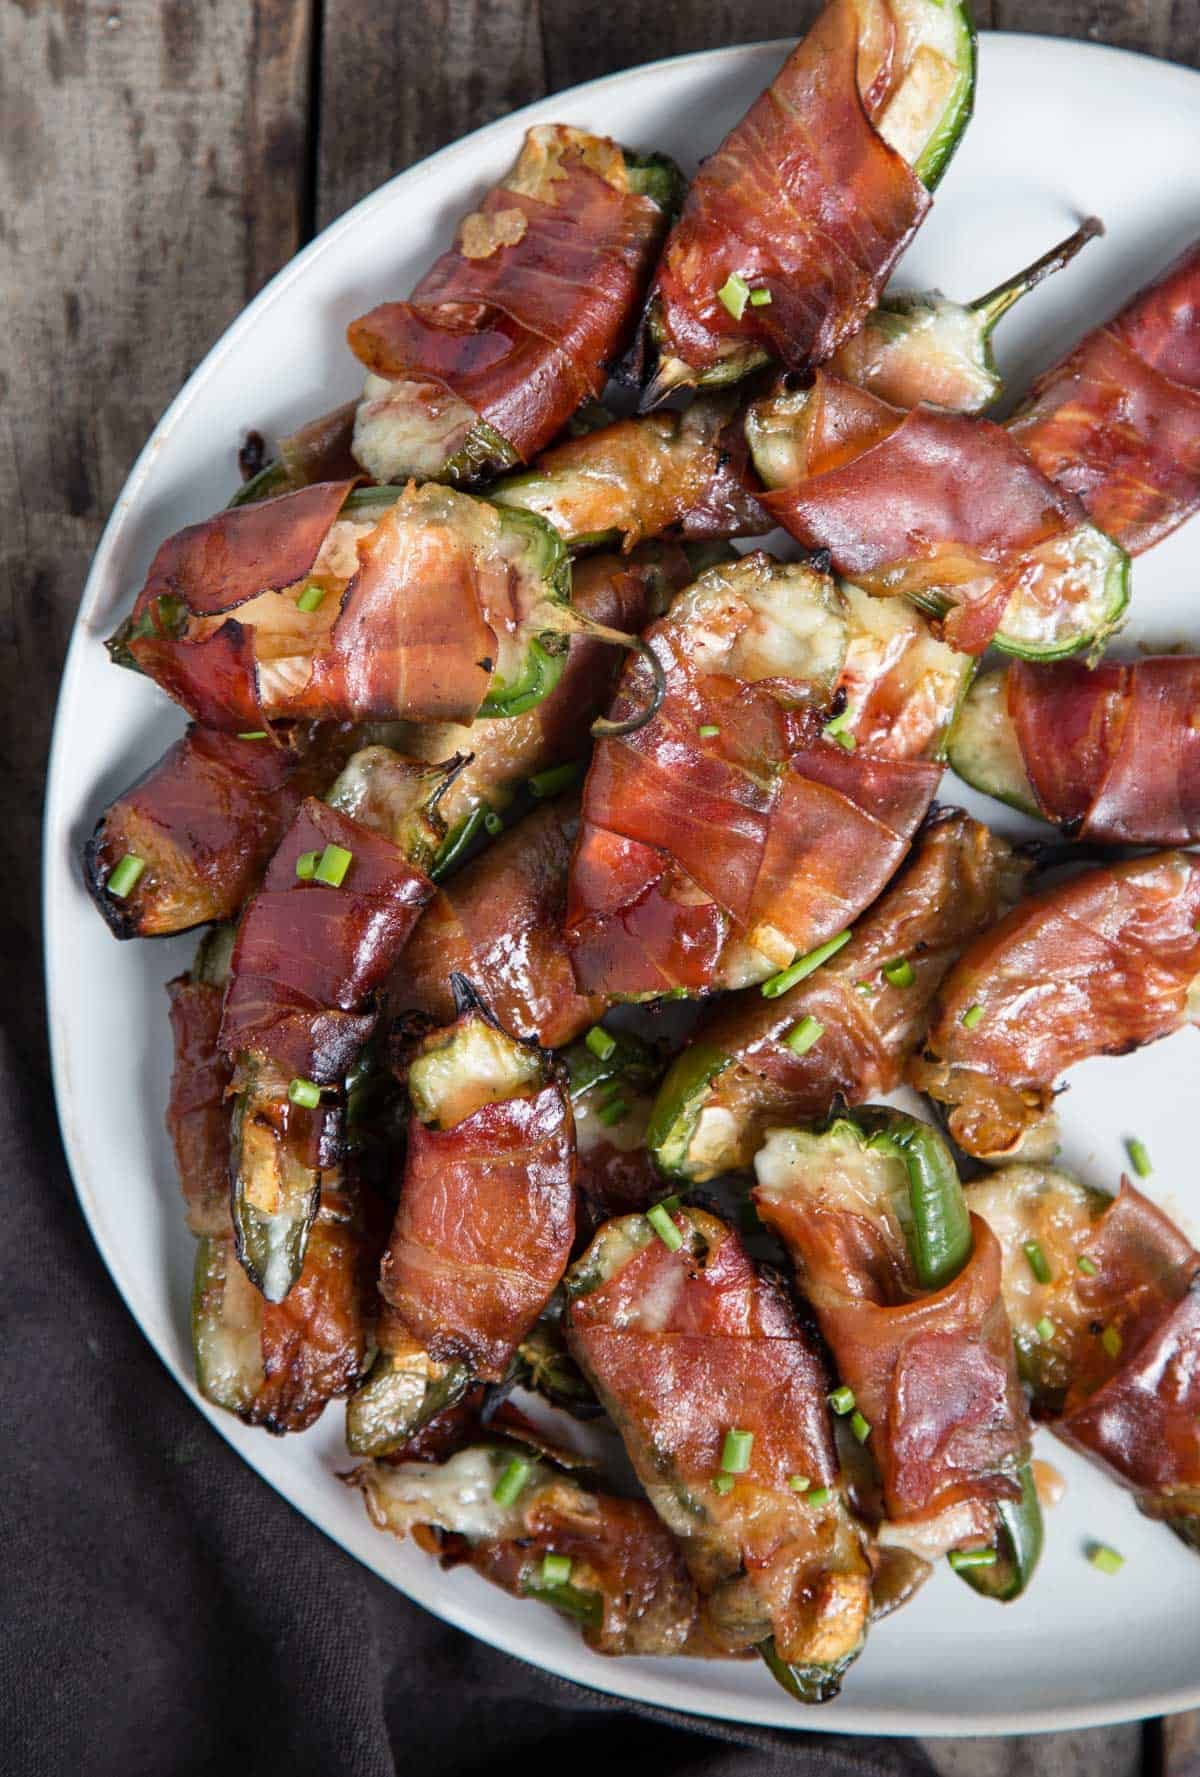 A platter of jalapeño poppers stuffed with brie cheese and wrapped with prosciutto on a white plate